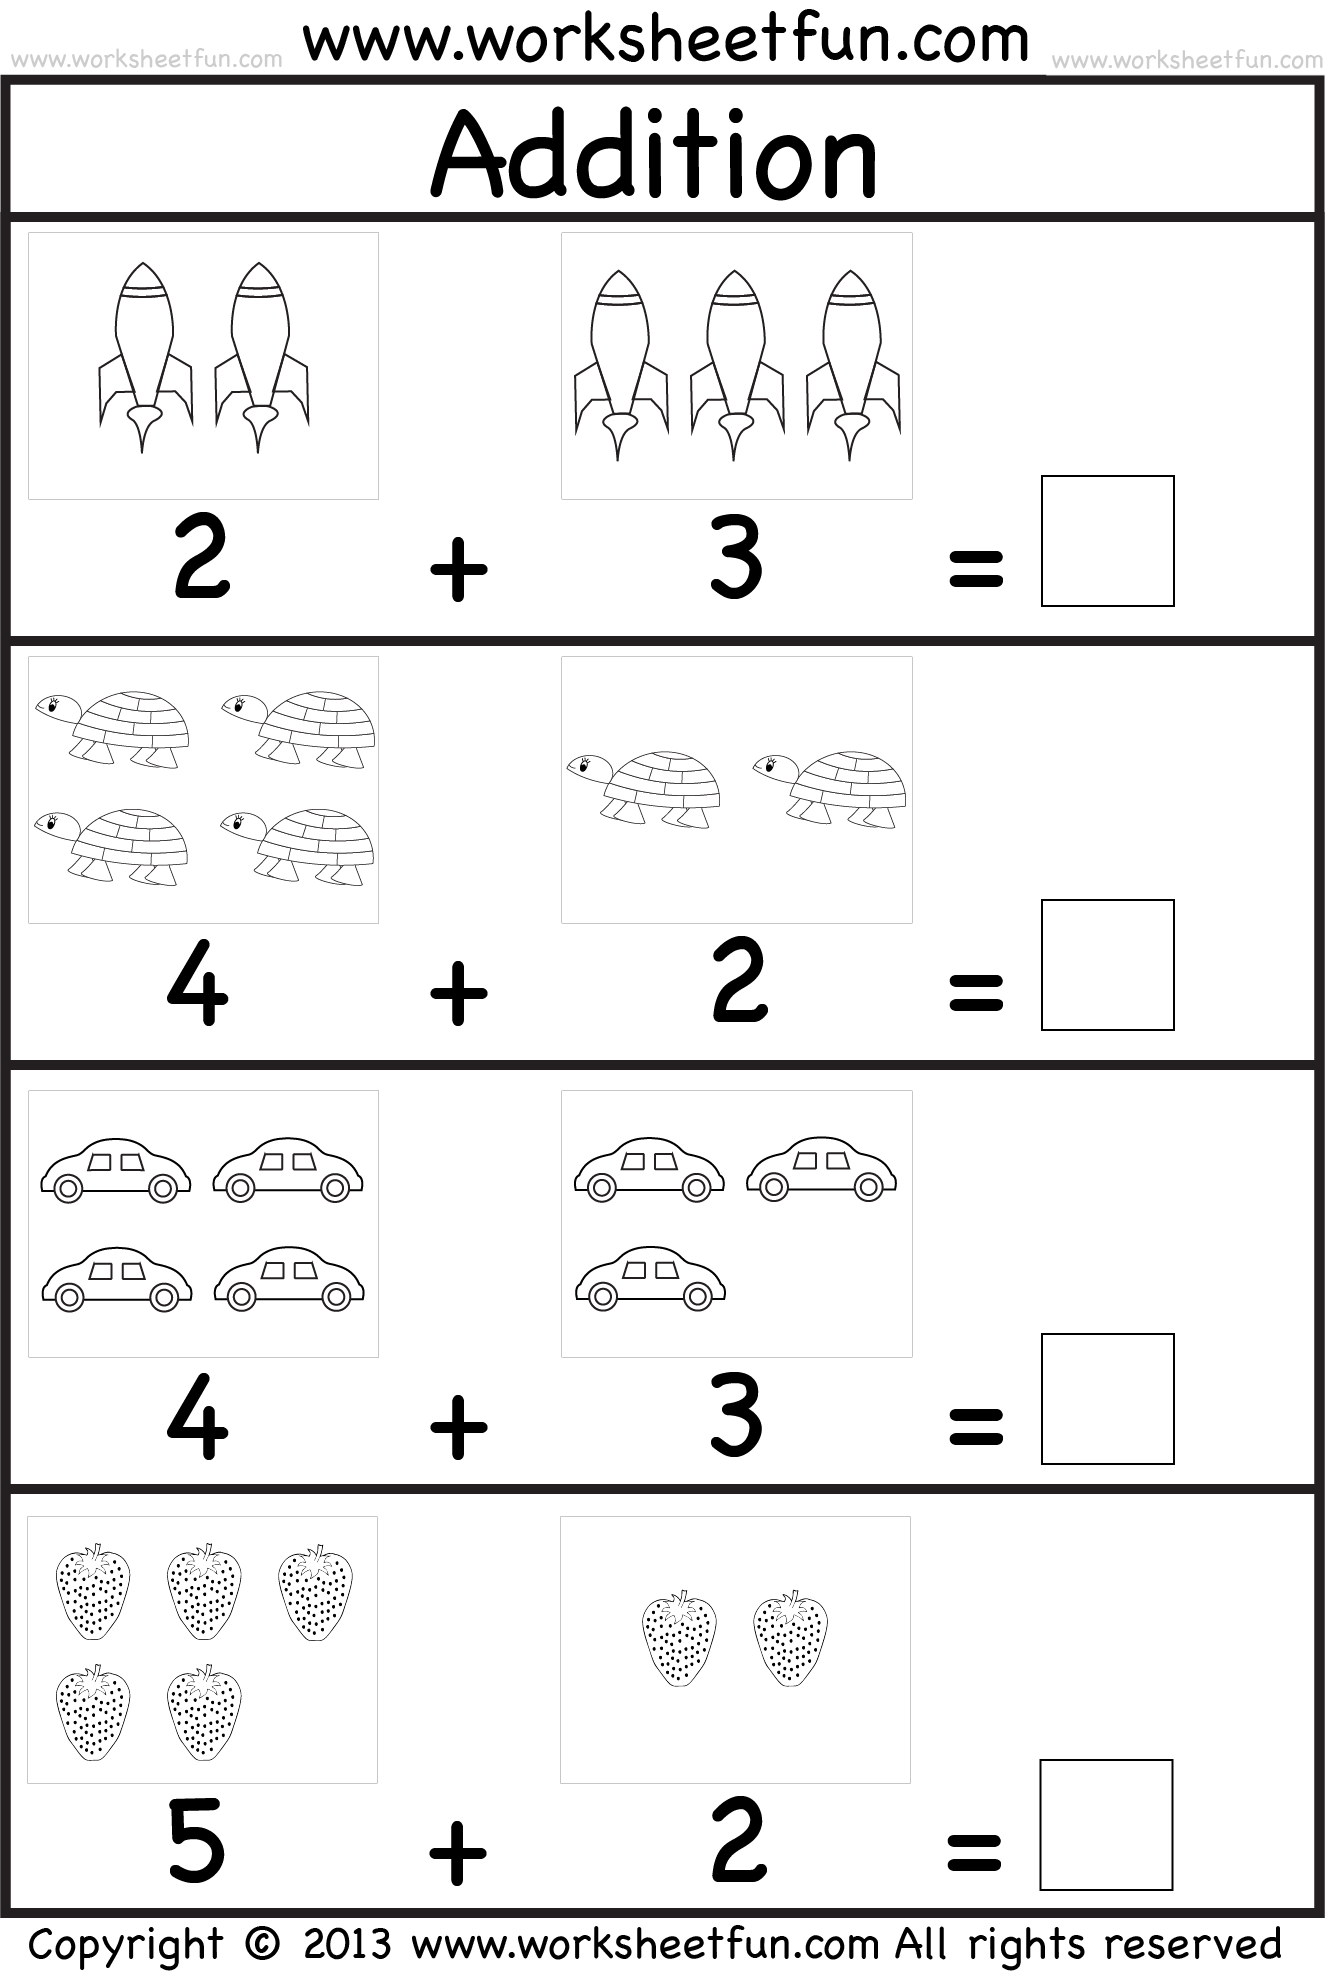 math worksheet : addition worksheets free printable kindergarten  worksheets on  : Math Worksheets Kindergarten Free